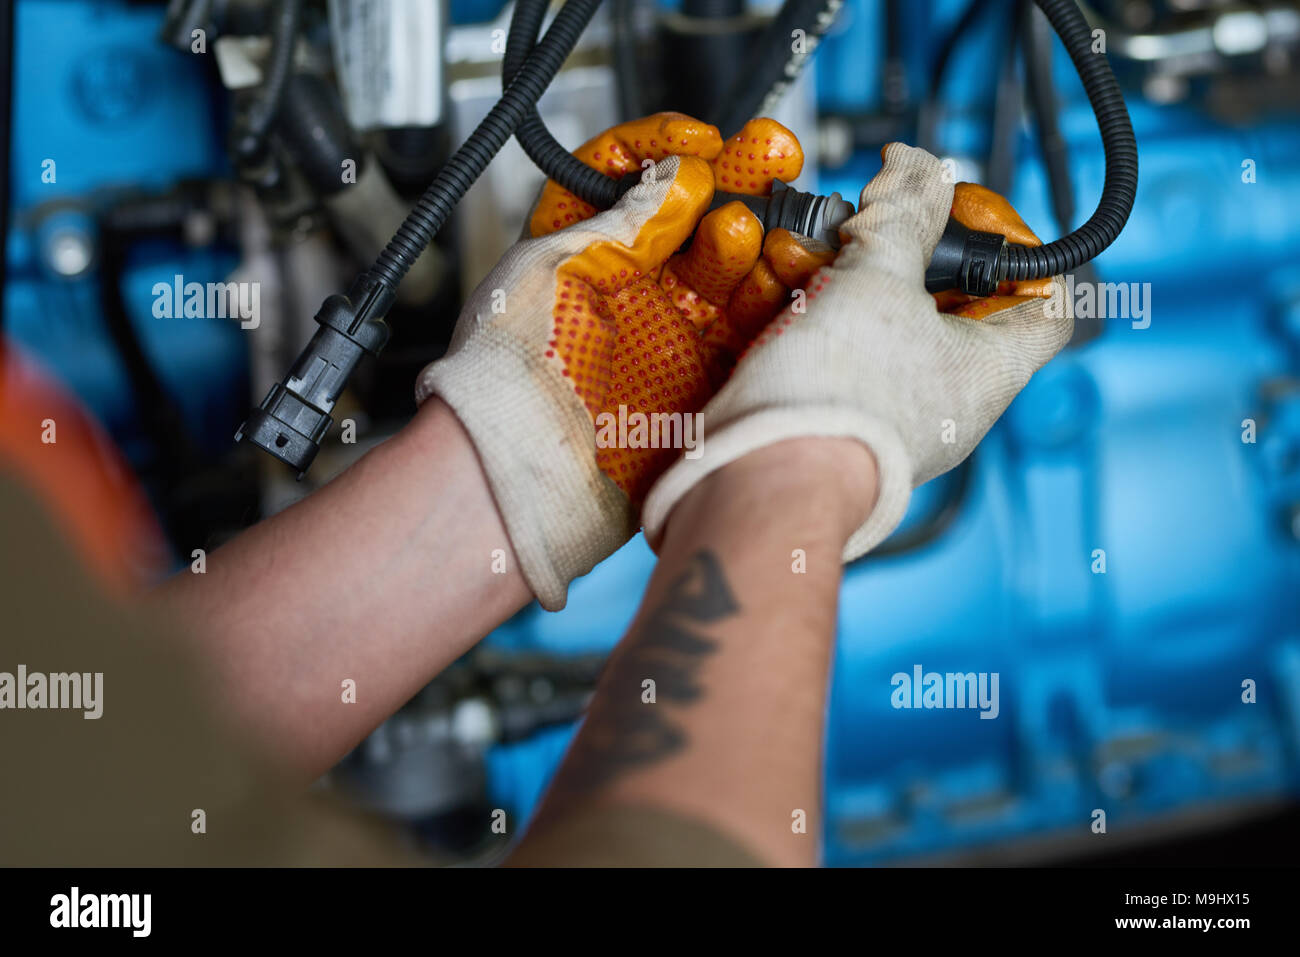 Electrician Connecting Cables - Stock Image